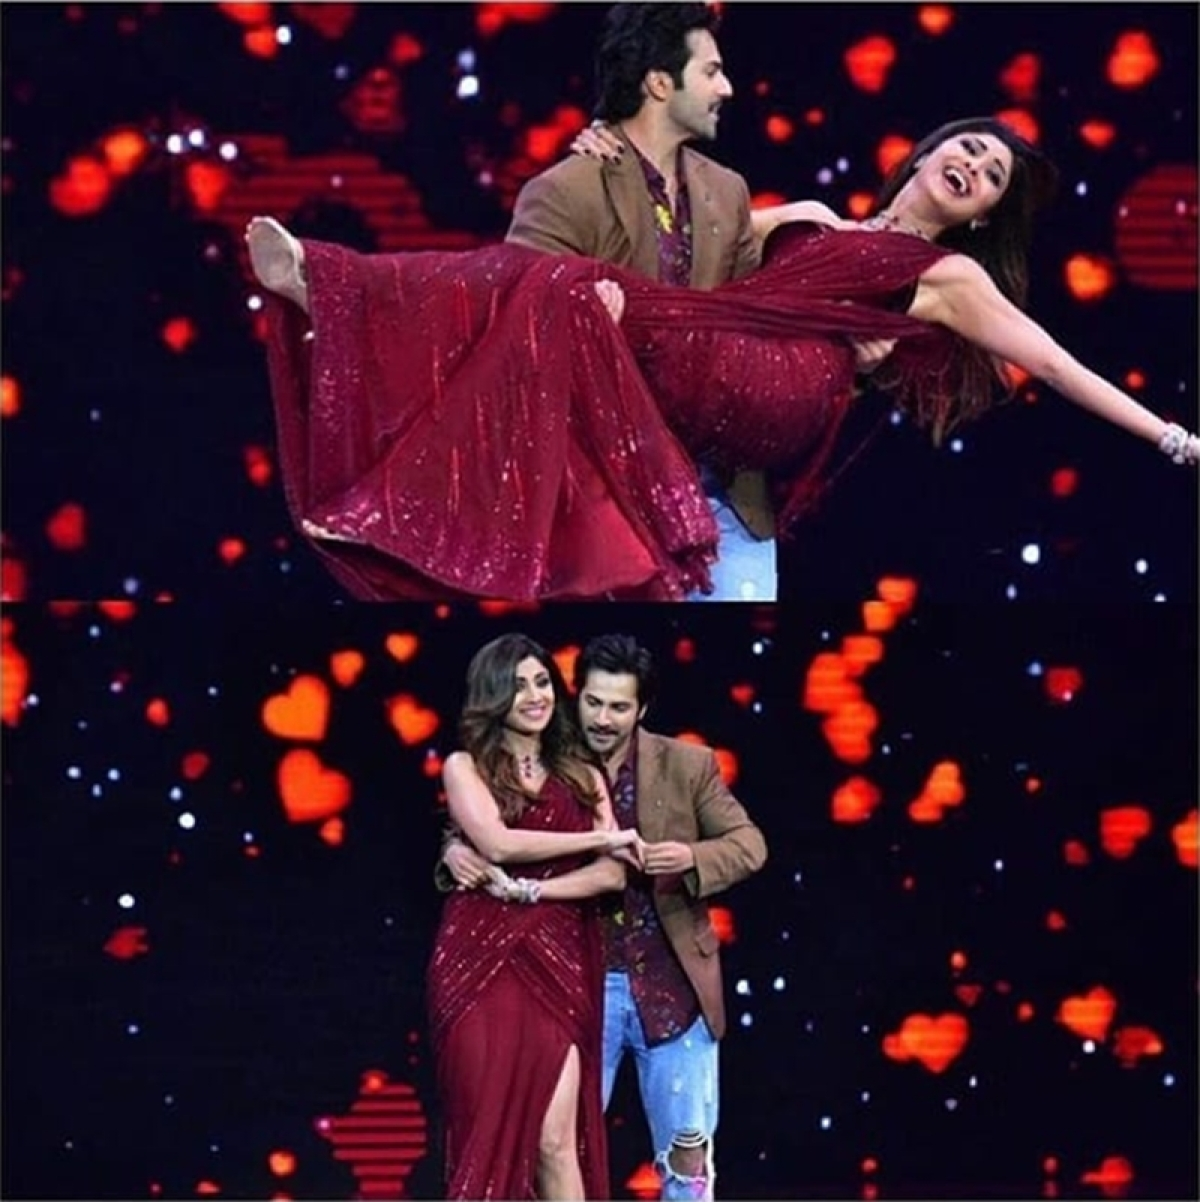 In Pictures: 'October' star Varun Dhawan burns the dance floor with gorgeous Shilpa Shetty at Super Dancer Chapter 2 finale